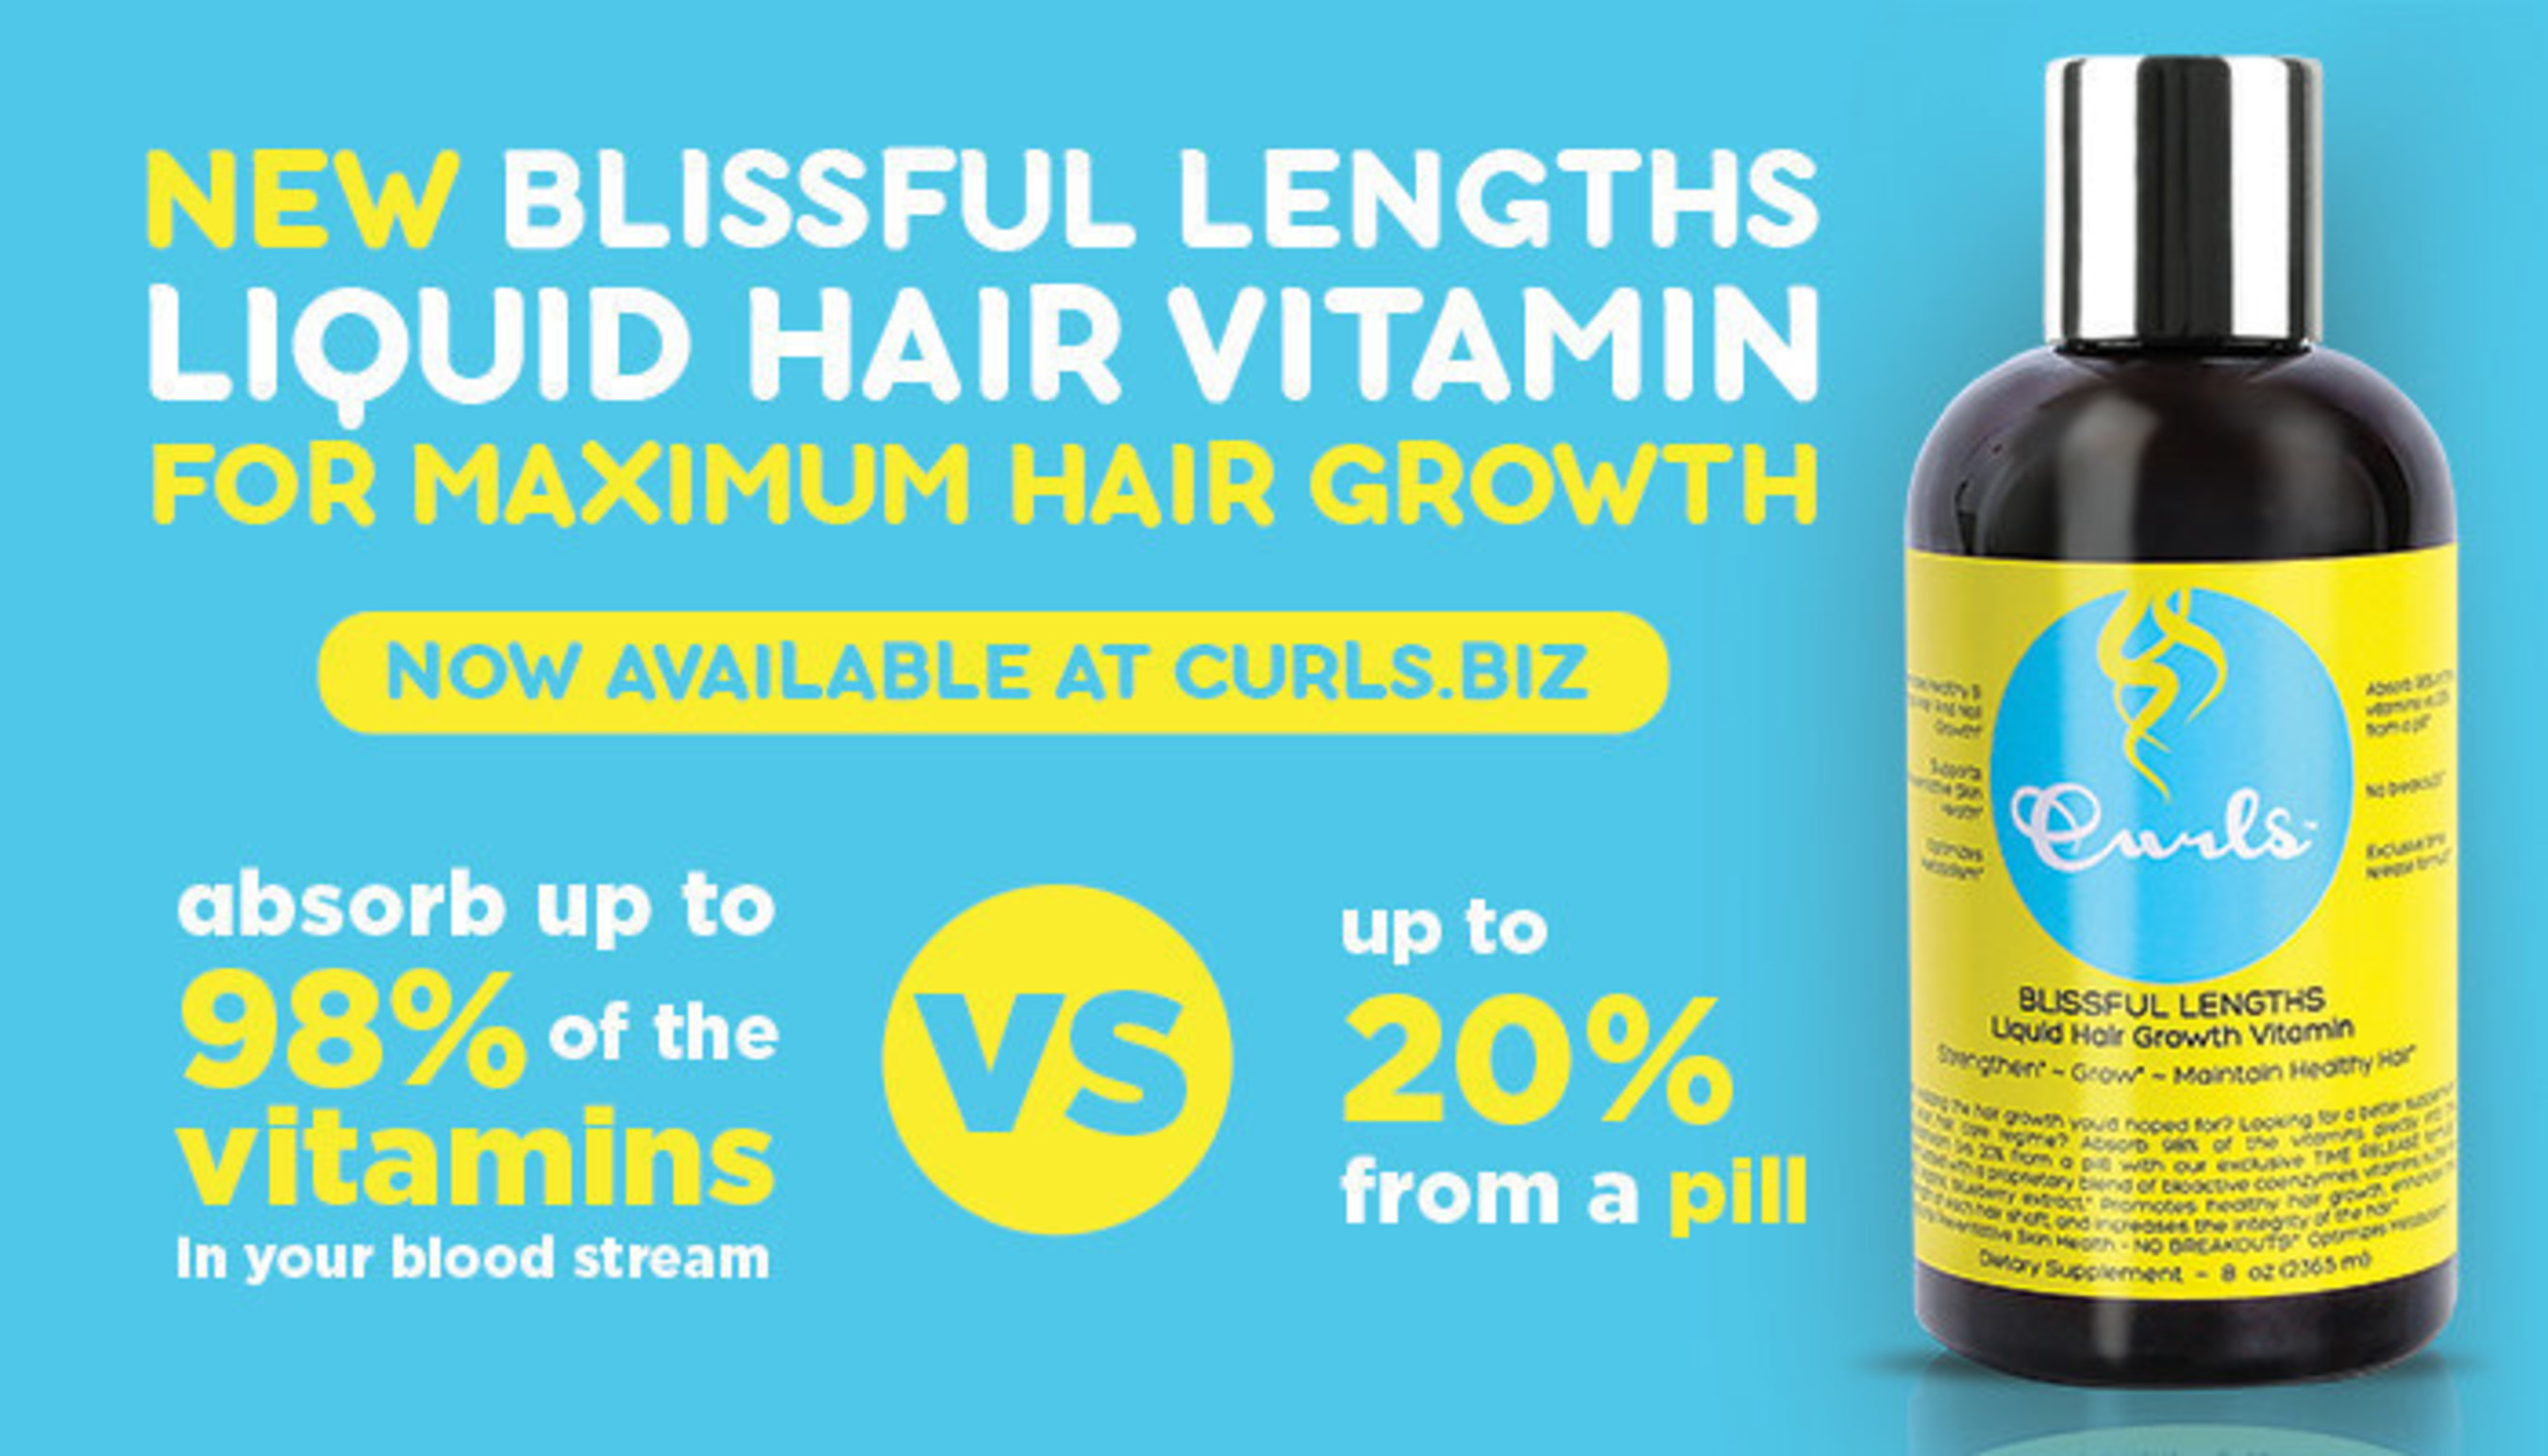 For more information on CURLS Blissful Lengths Liquid Hair Growth Vitamin, visit www.CURLS.biz.